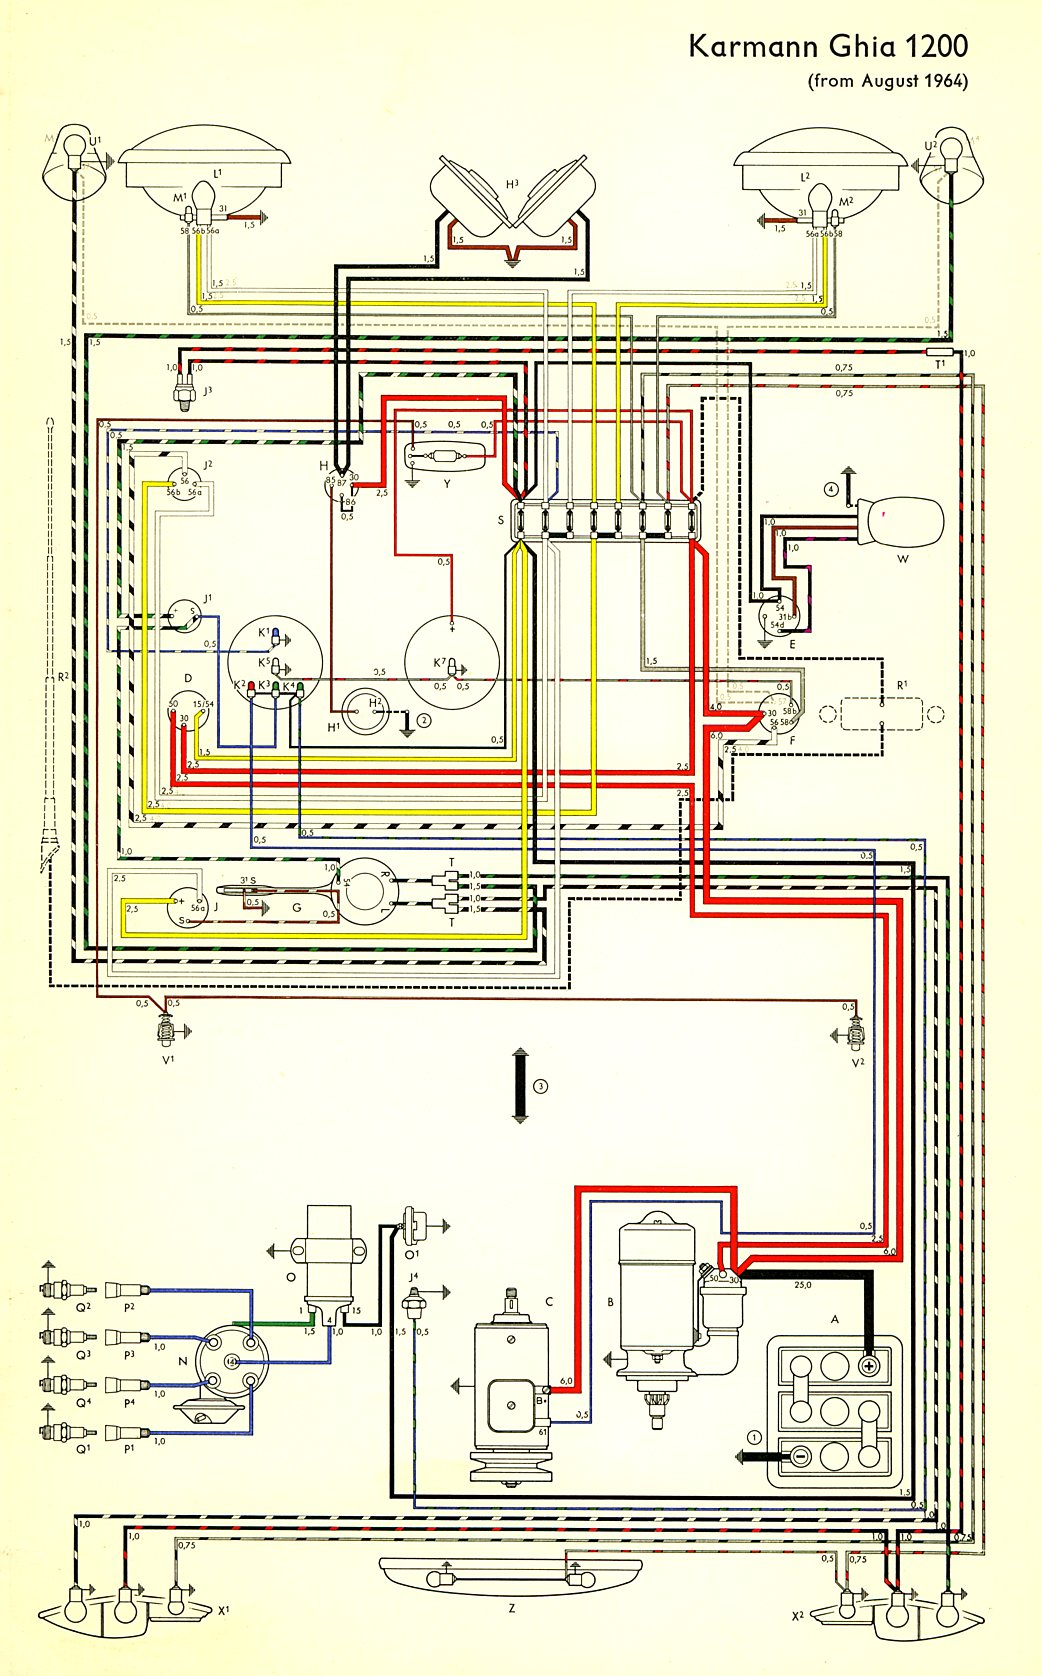 1970 vw karmann ghia wiring diagram thesamba.com :: karmann ghia wiring diagrams 1967 vw karmann ghia wiring diagram